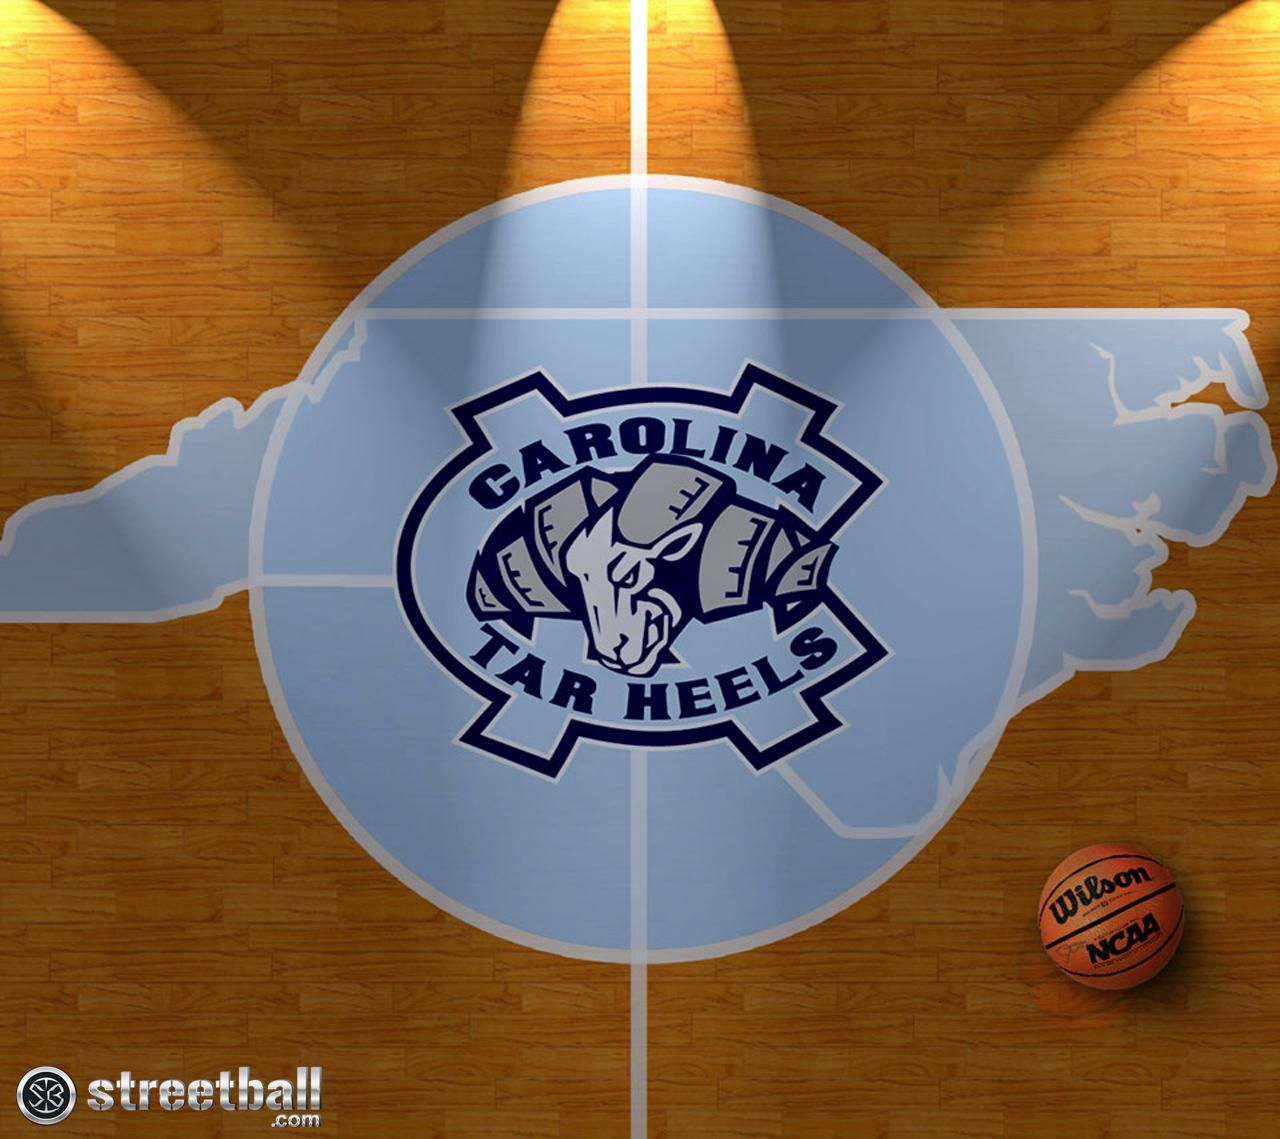 UNC Tar Heels Live Wallpapers Android Apps on Google Play ×